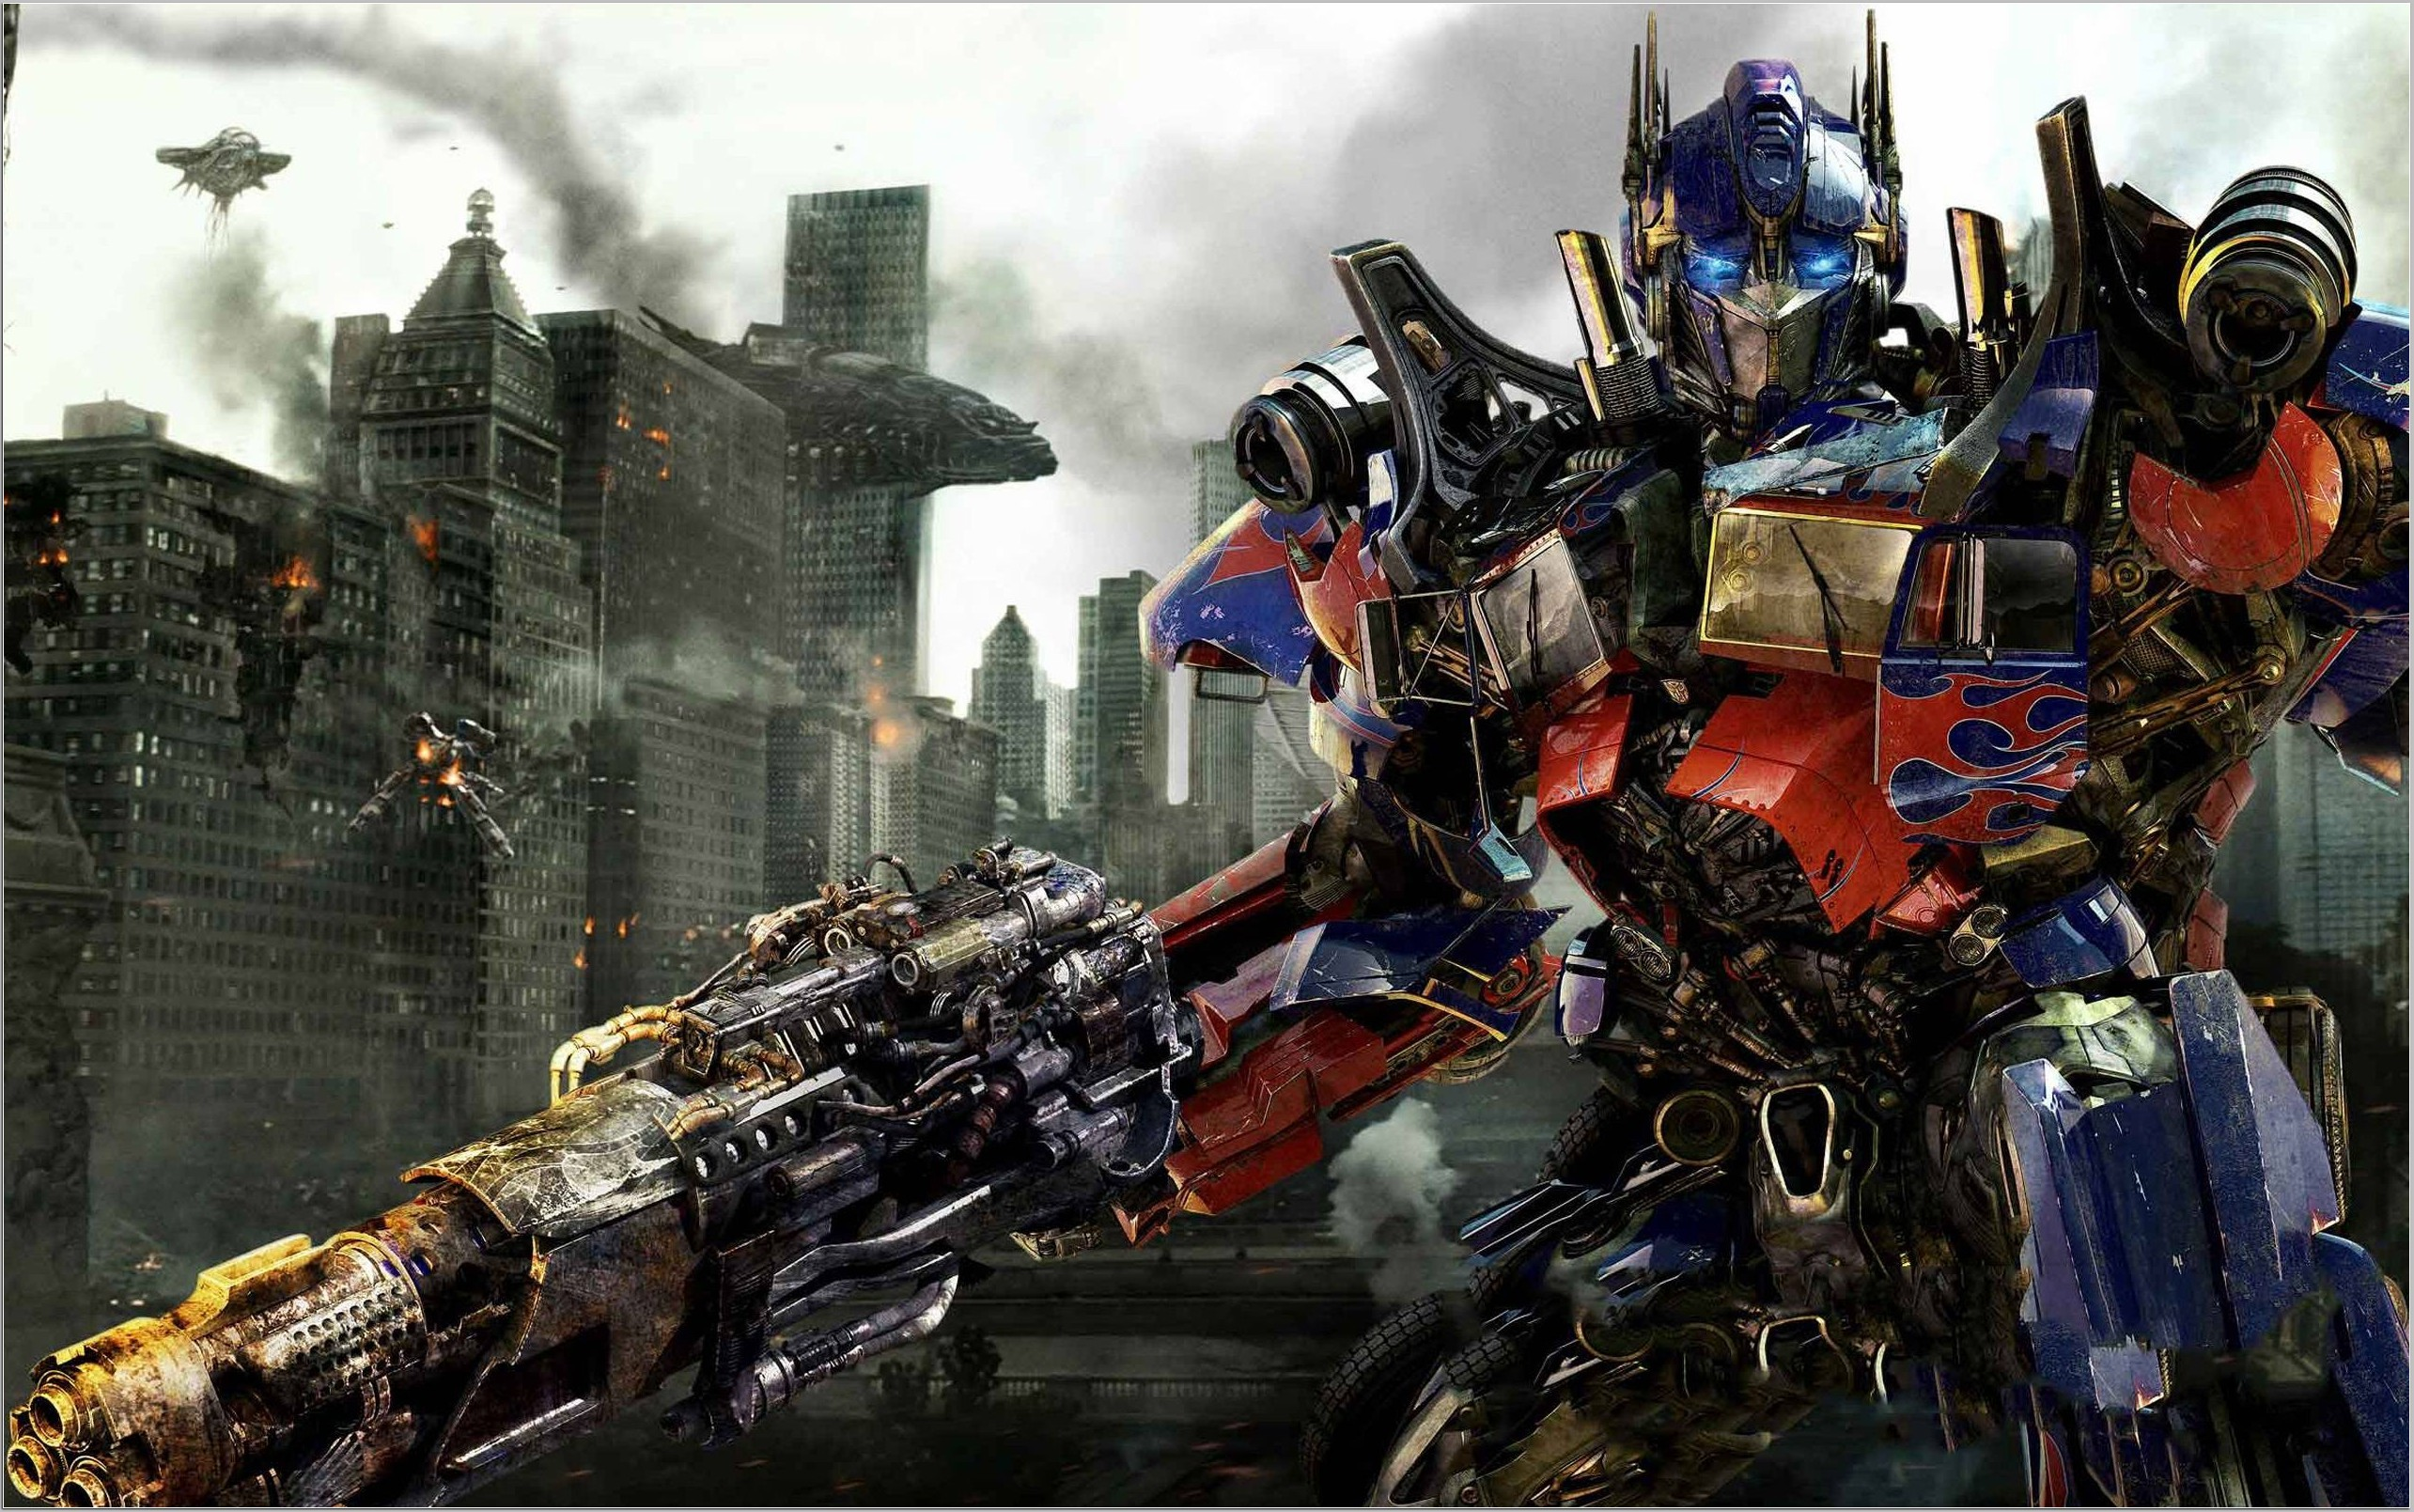 Res: 2569x1609, transformers hd wallpapers for windows 7